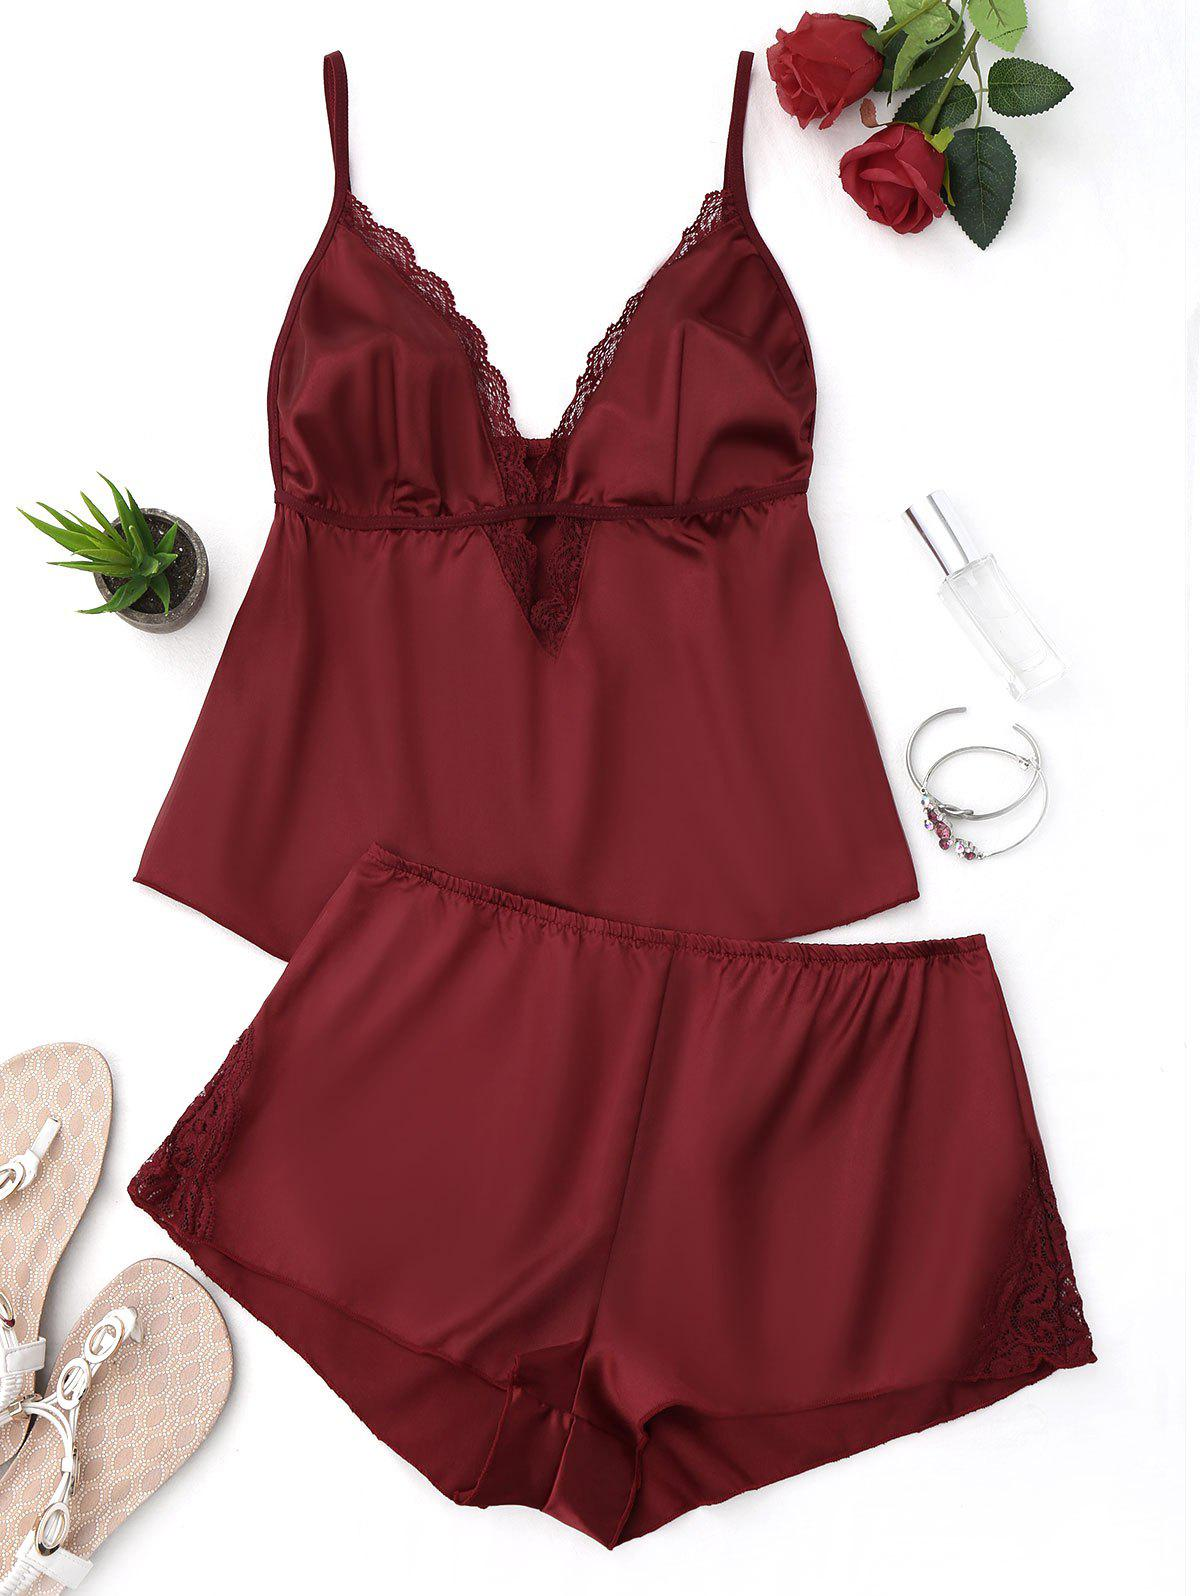 Plunge Cami Lace Trim PJ SetWOMEN<br><br>Size: M; Color: WINE RED; Material: Polyester; Pattern Type: Solid; Weight: 0.1500kg; Package Contents: 1 x Cami Top  1 x Shorts;